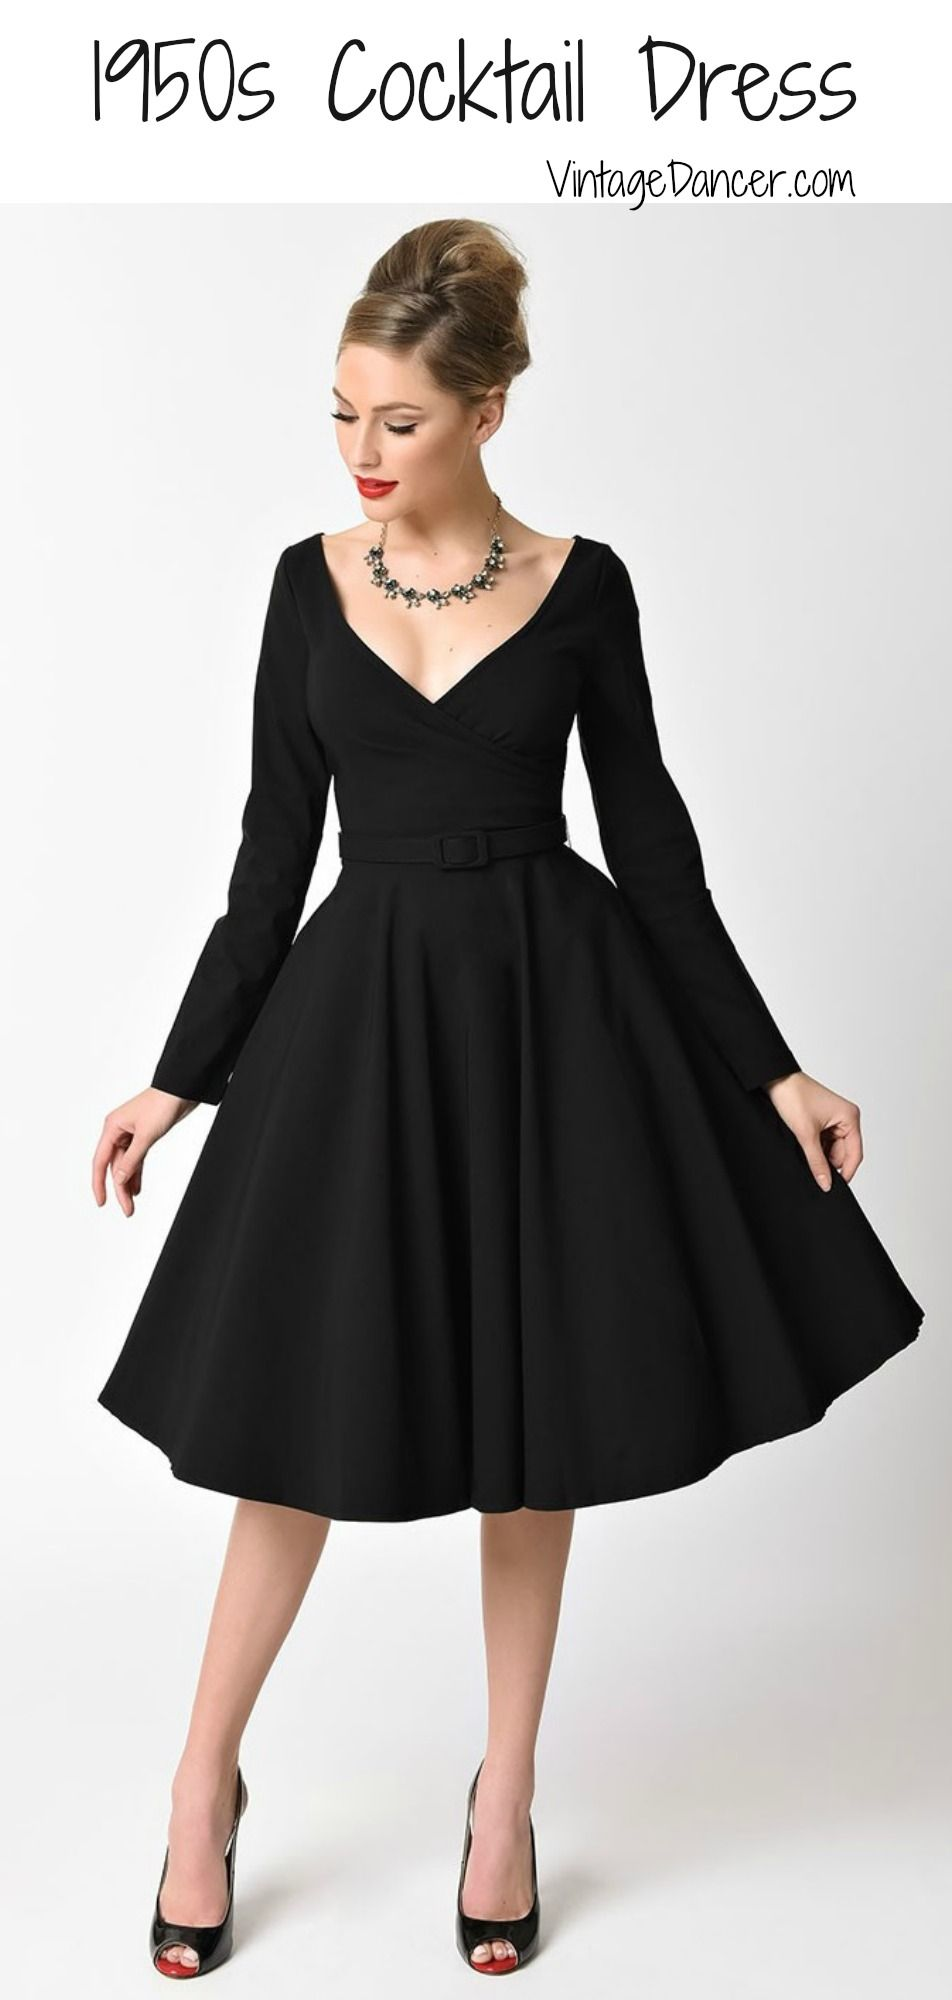 Black 1950s cocktail dresses and party dresses at VintageDancer.com 03bed4e9d